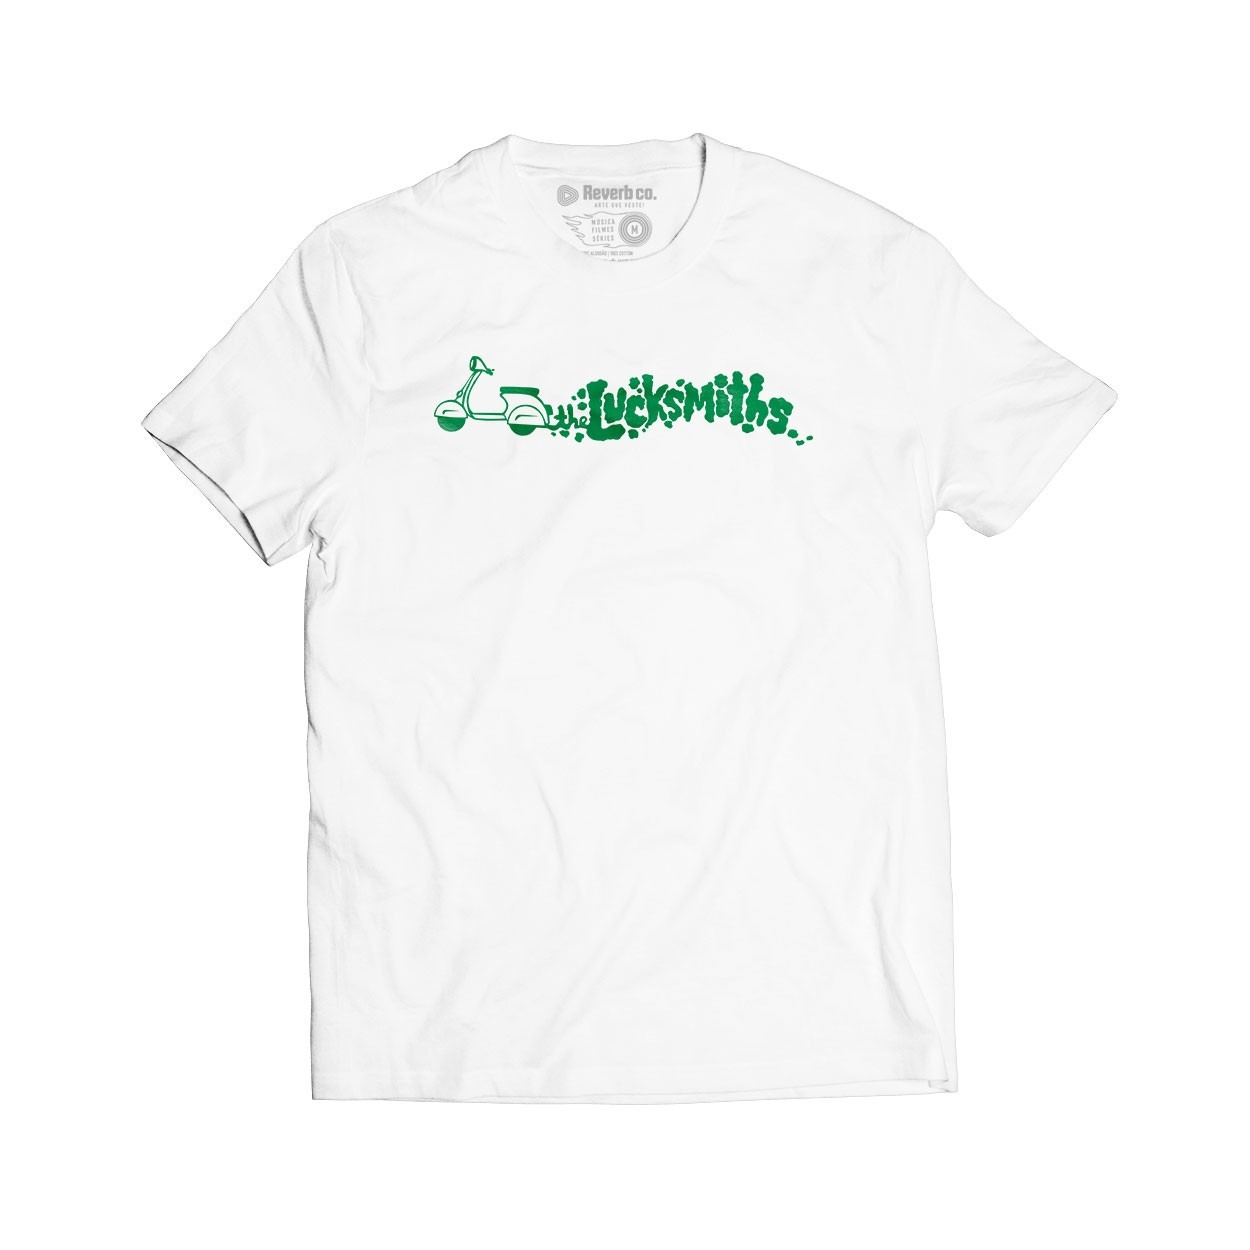 Camiseta The Lucksmiths - Masculino